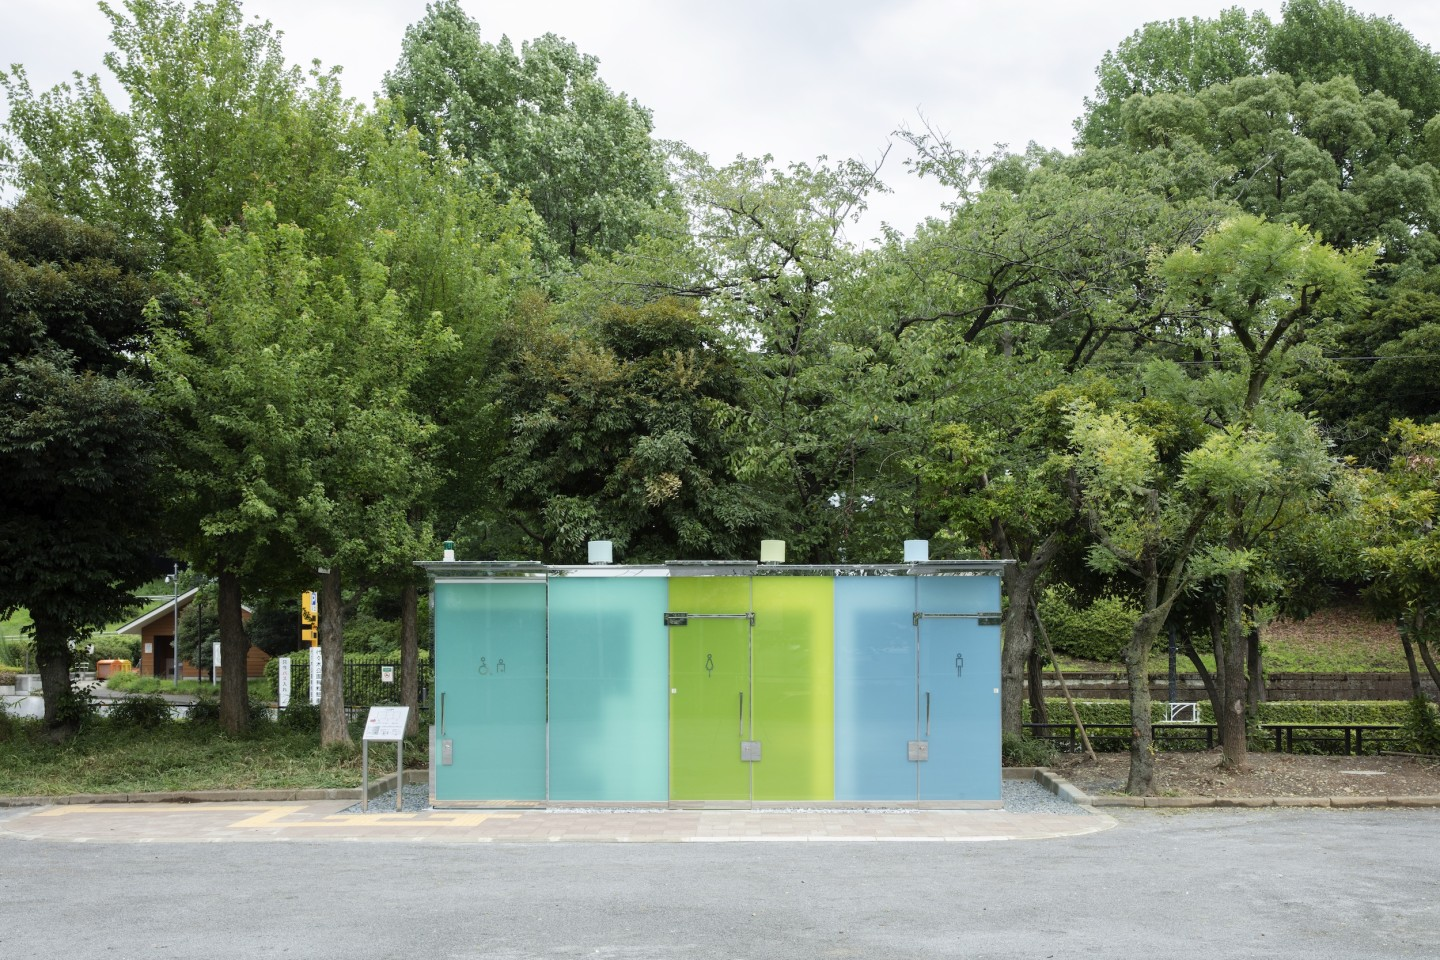 The bathrooms are part of a scheme to promote public toilets called The Tokyo Toilet Project